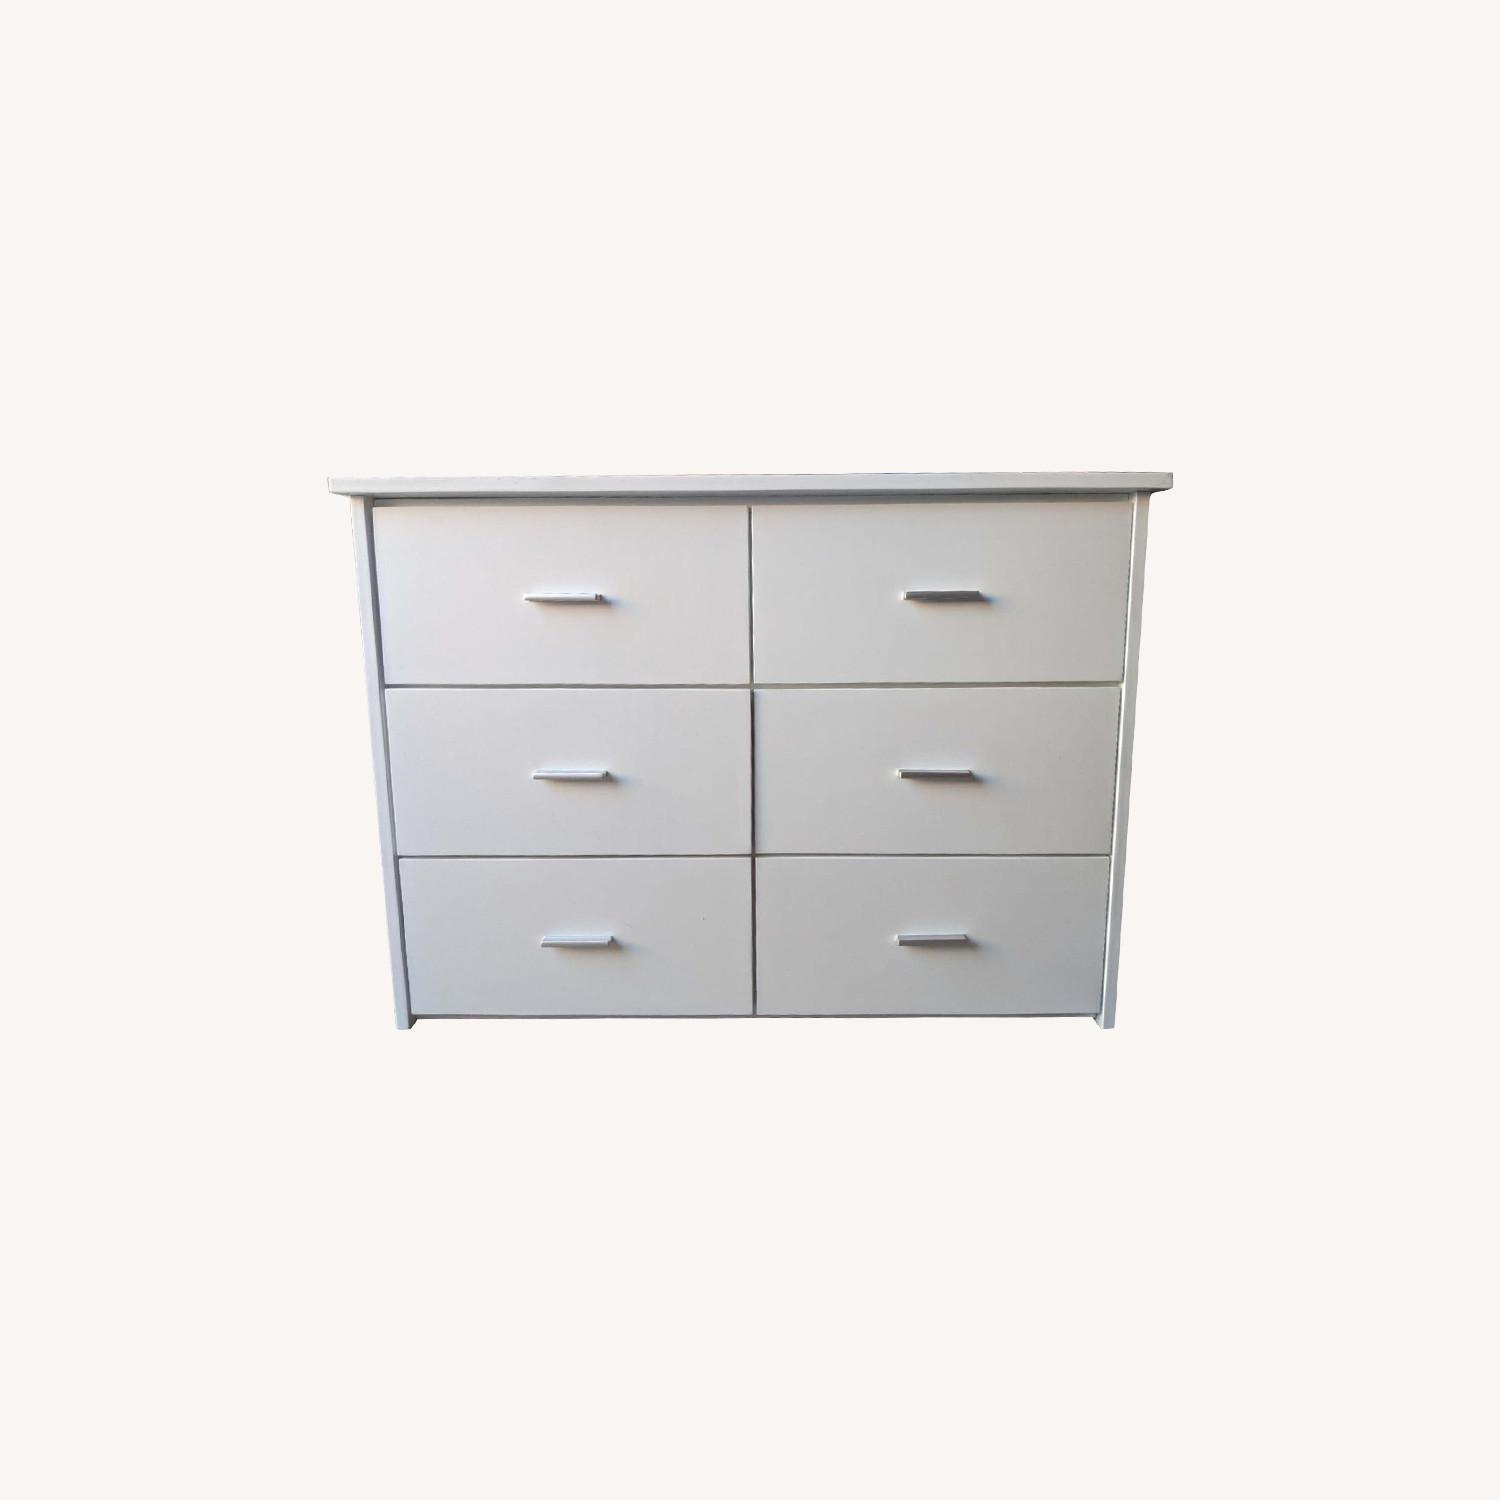 6-Drawer Storage Unit in White Finish - image-5